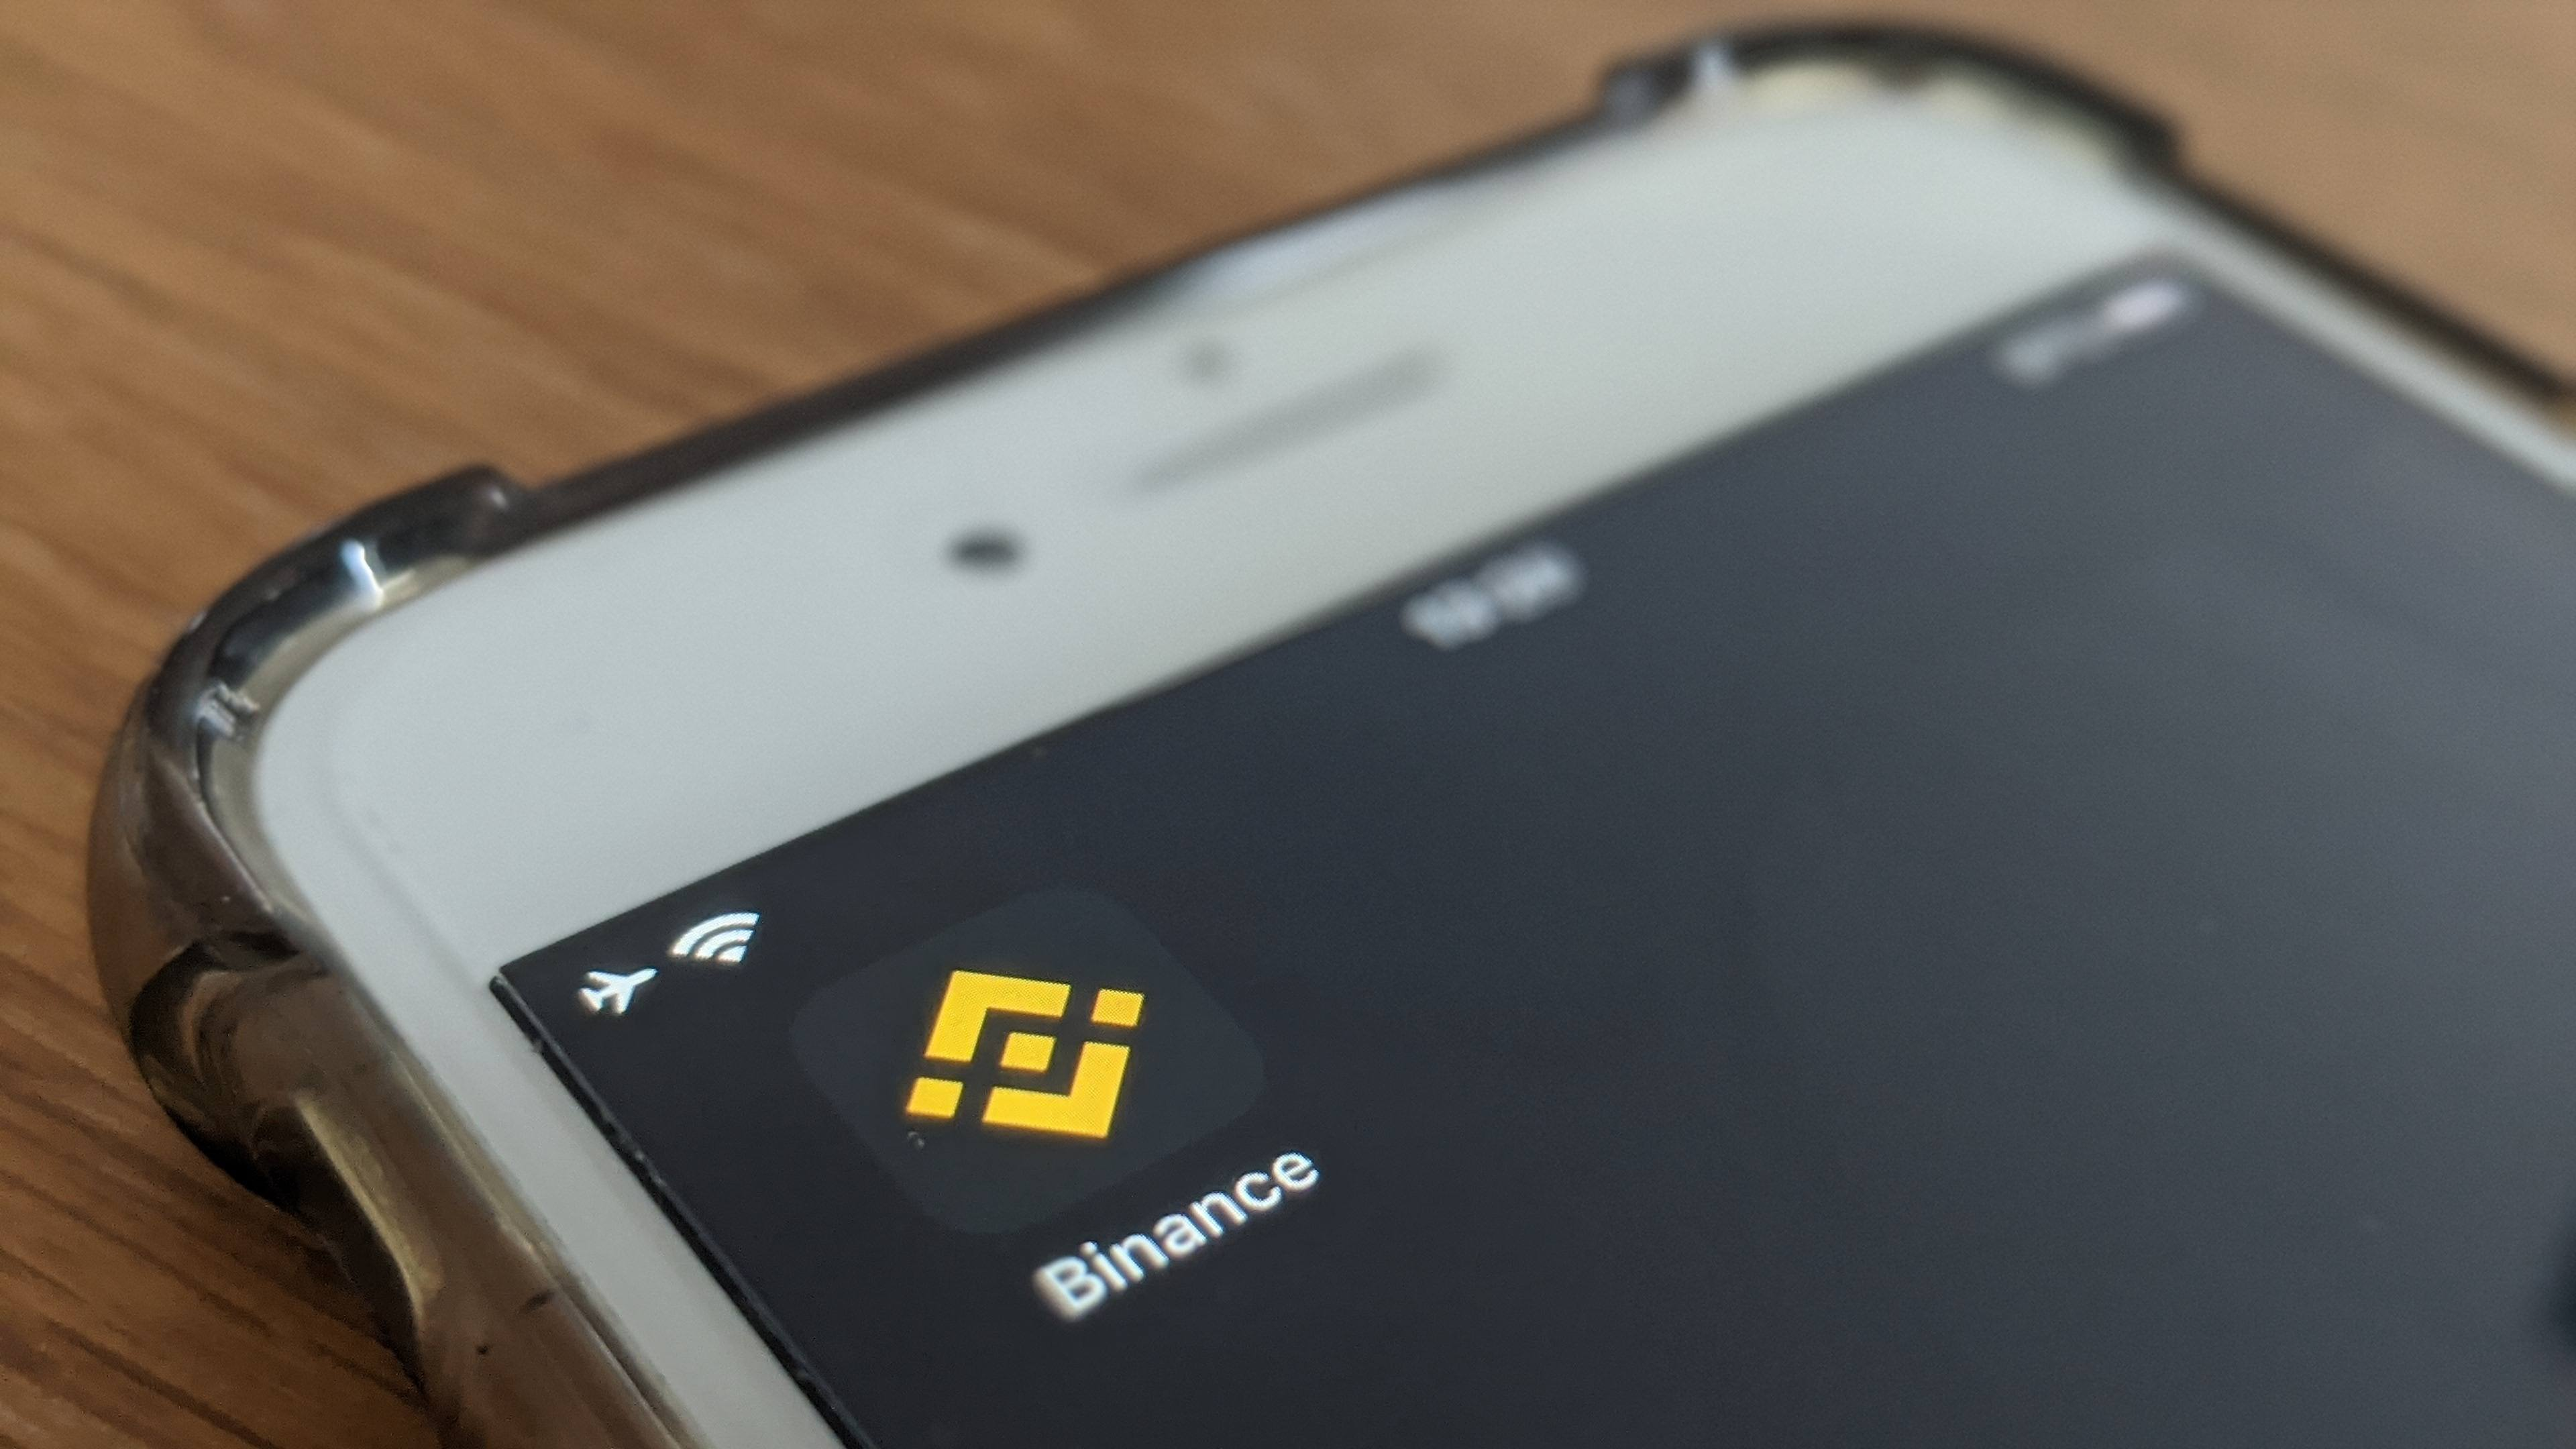 Binance-phone-Siamak-Masnavi-scaled.jpg